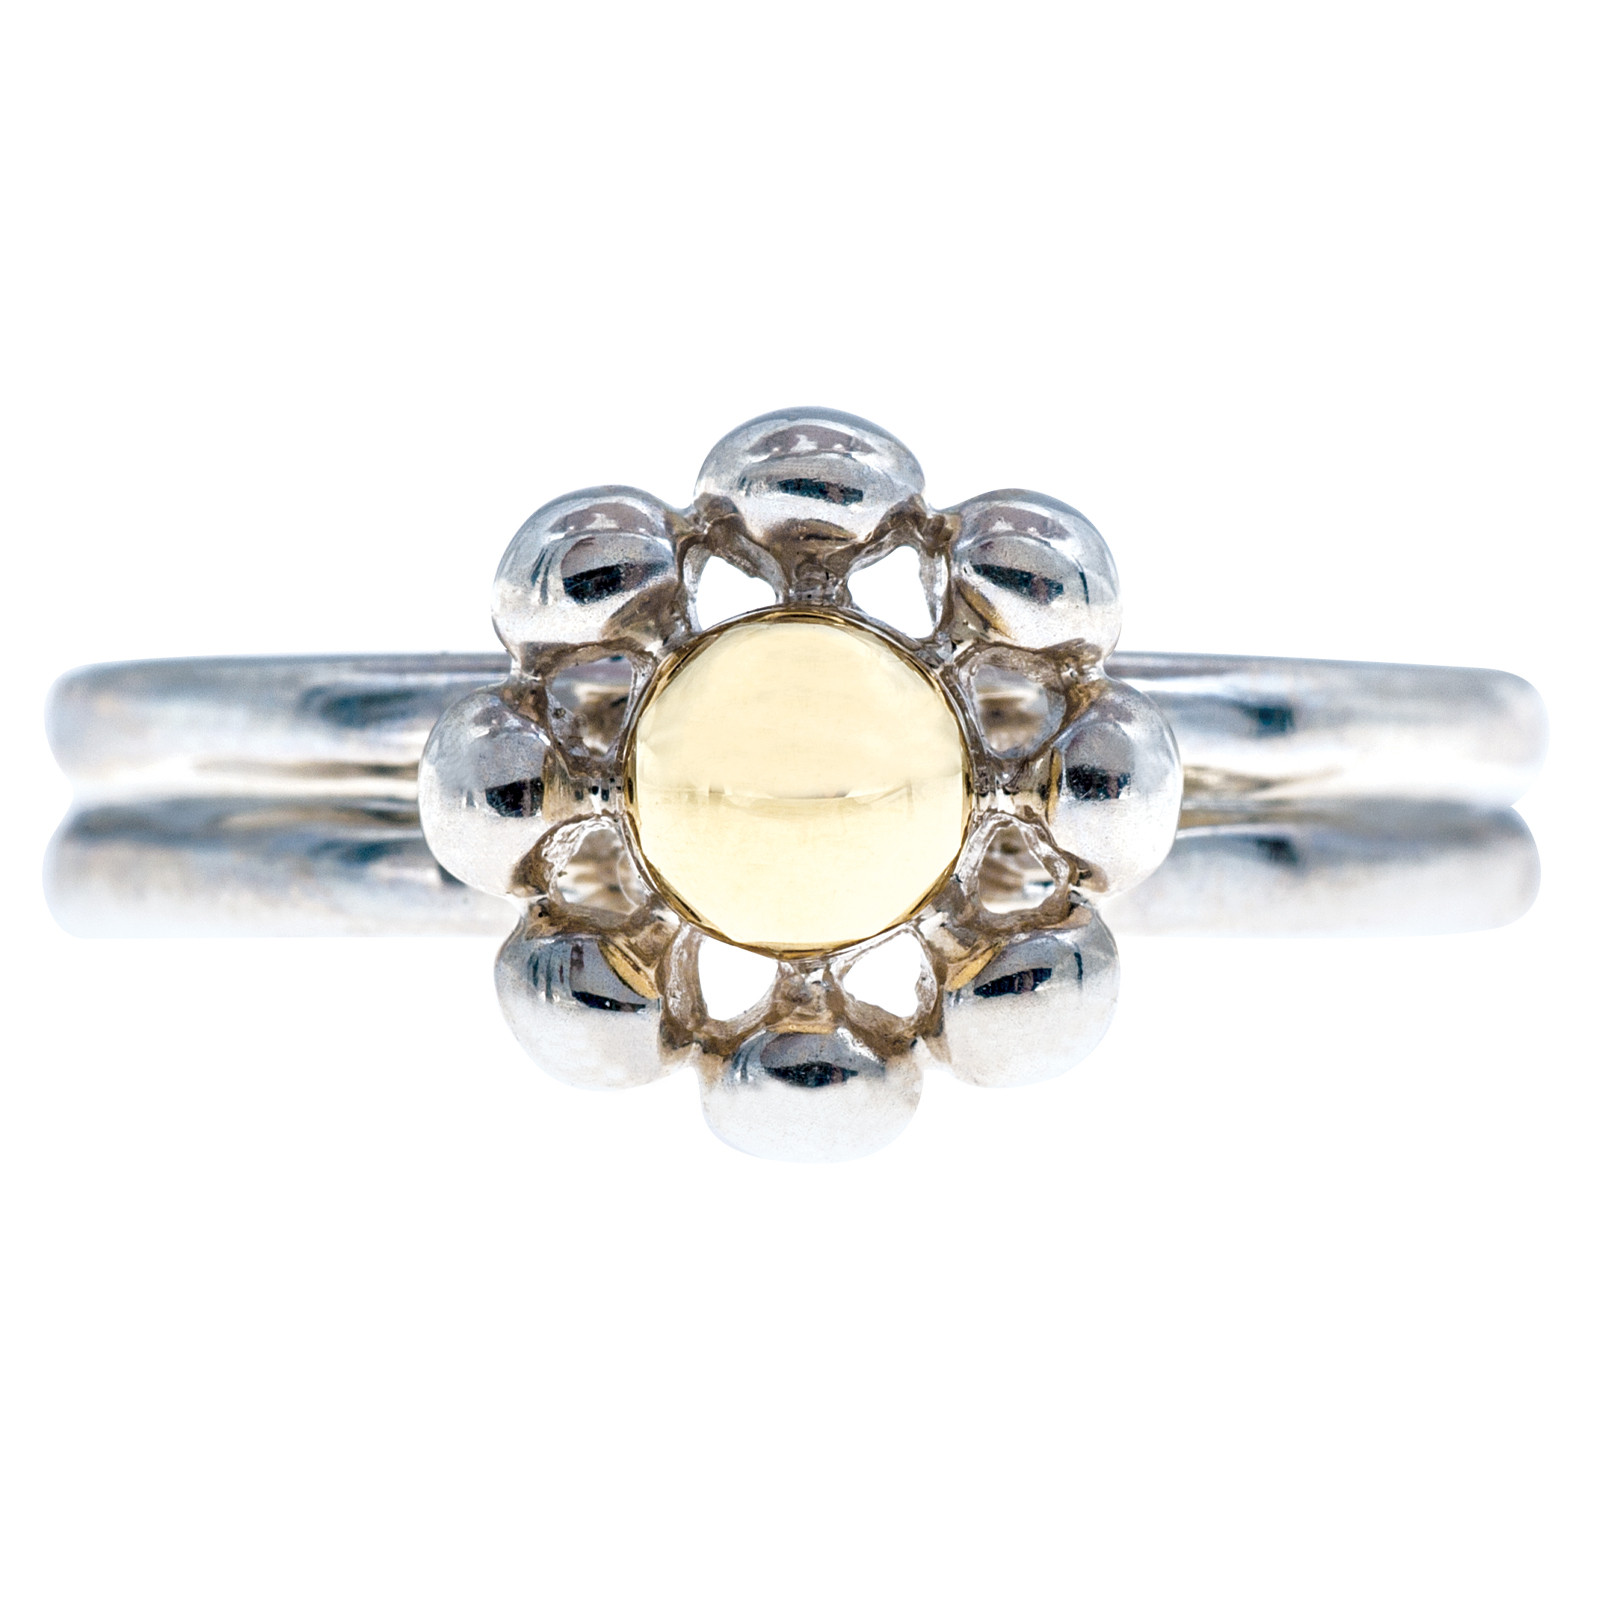 Vintage Tiffany & Co. Paloma Picasso Jolie Flower Ring